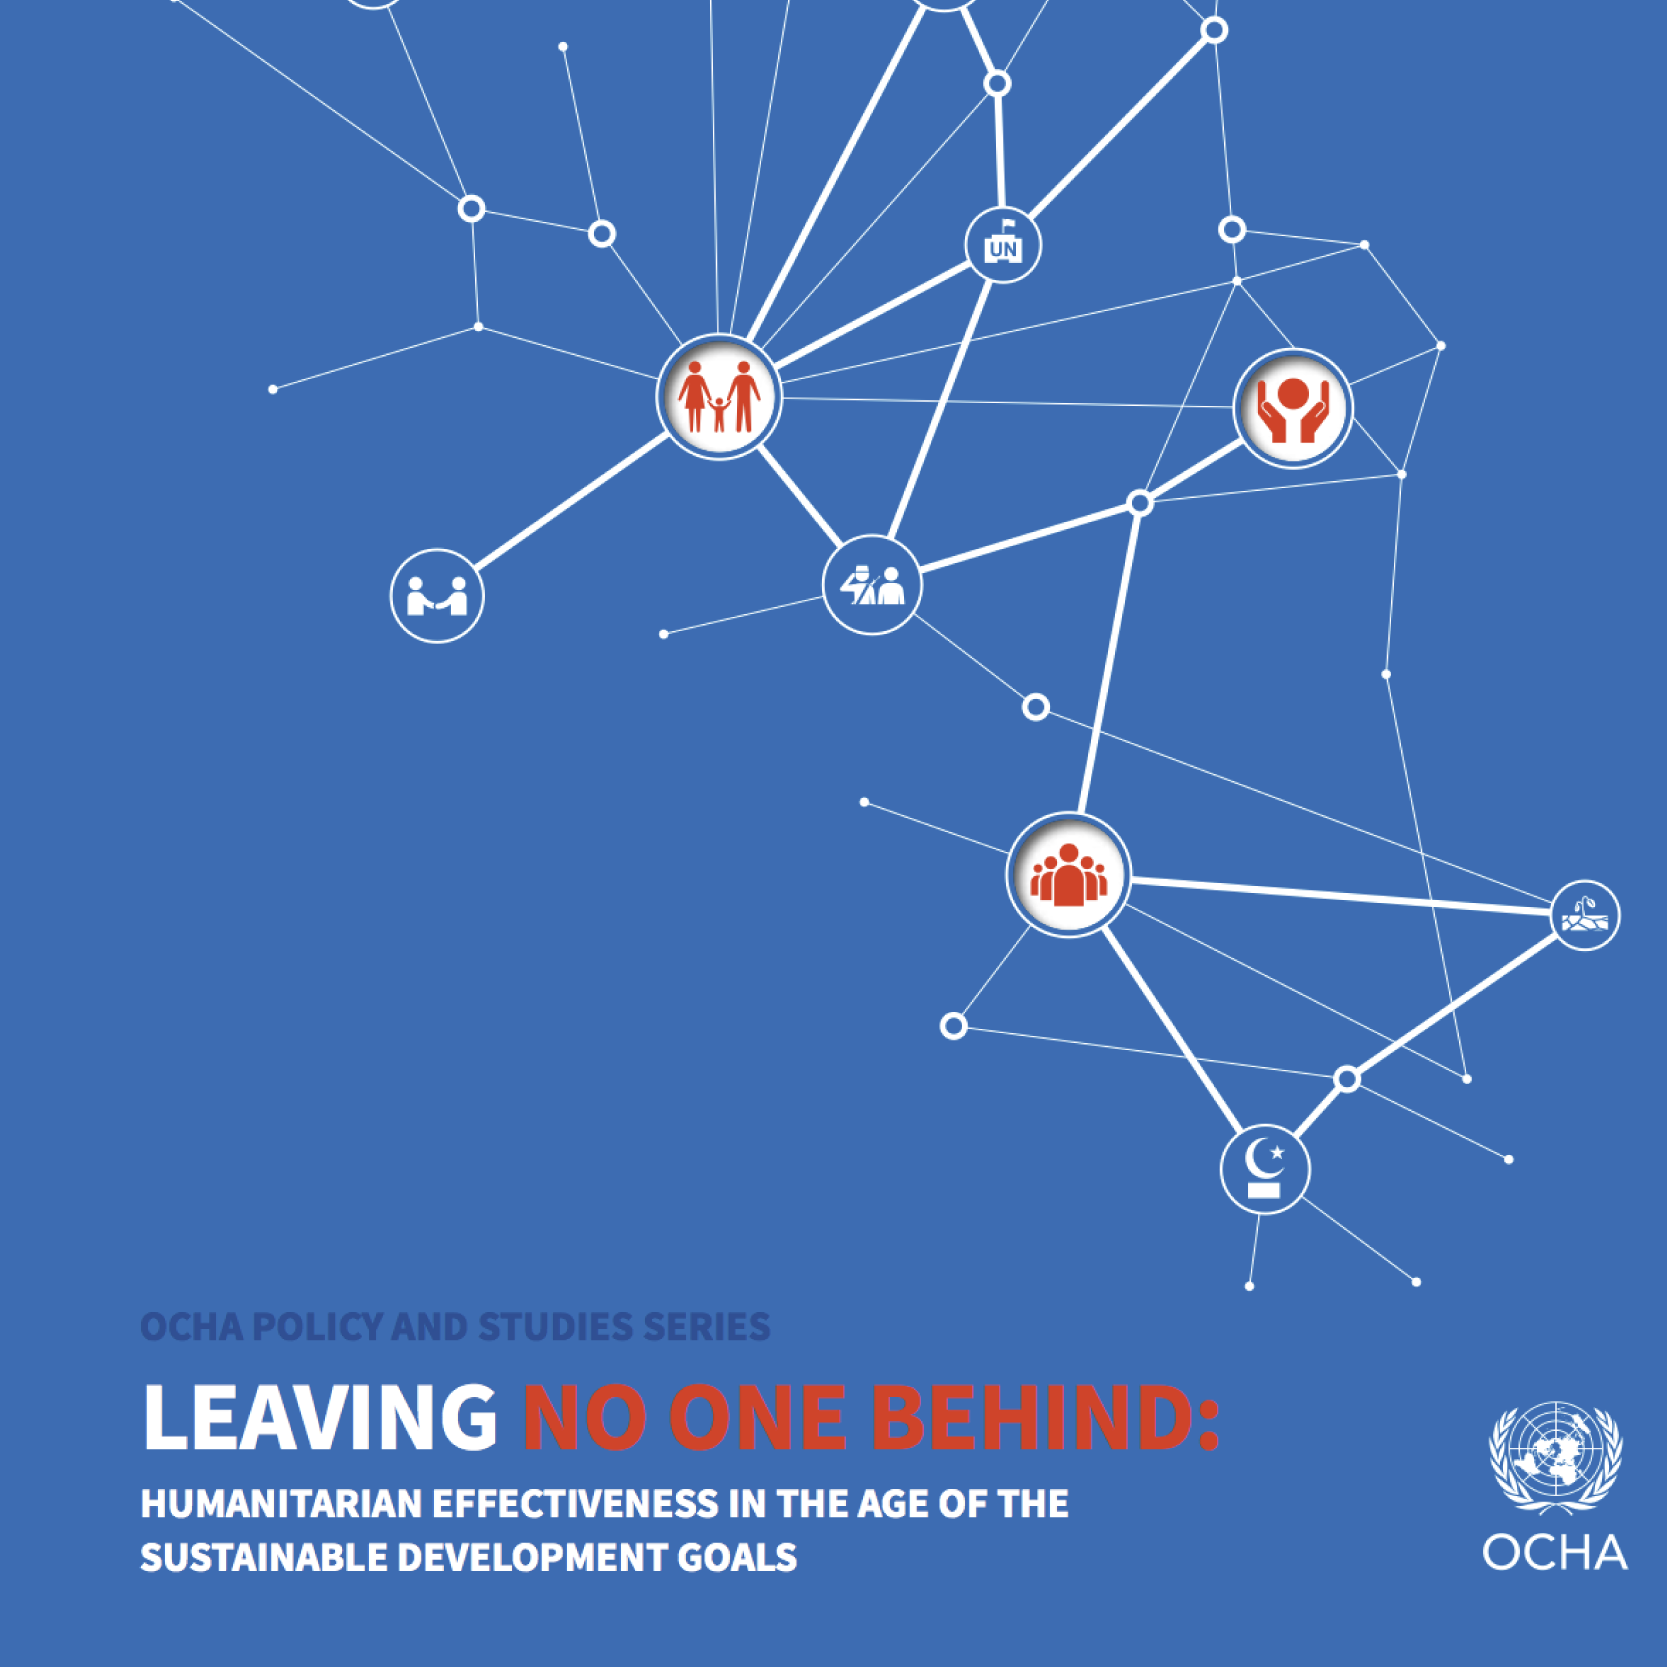 Leaving No One Behind: Humanitarian Effectiveness in the Age of the Sustainable Development Goals